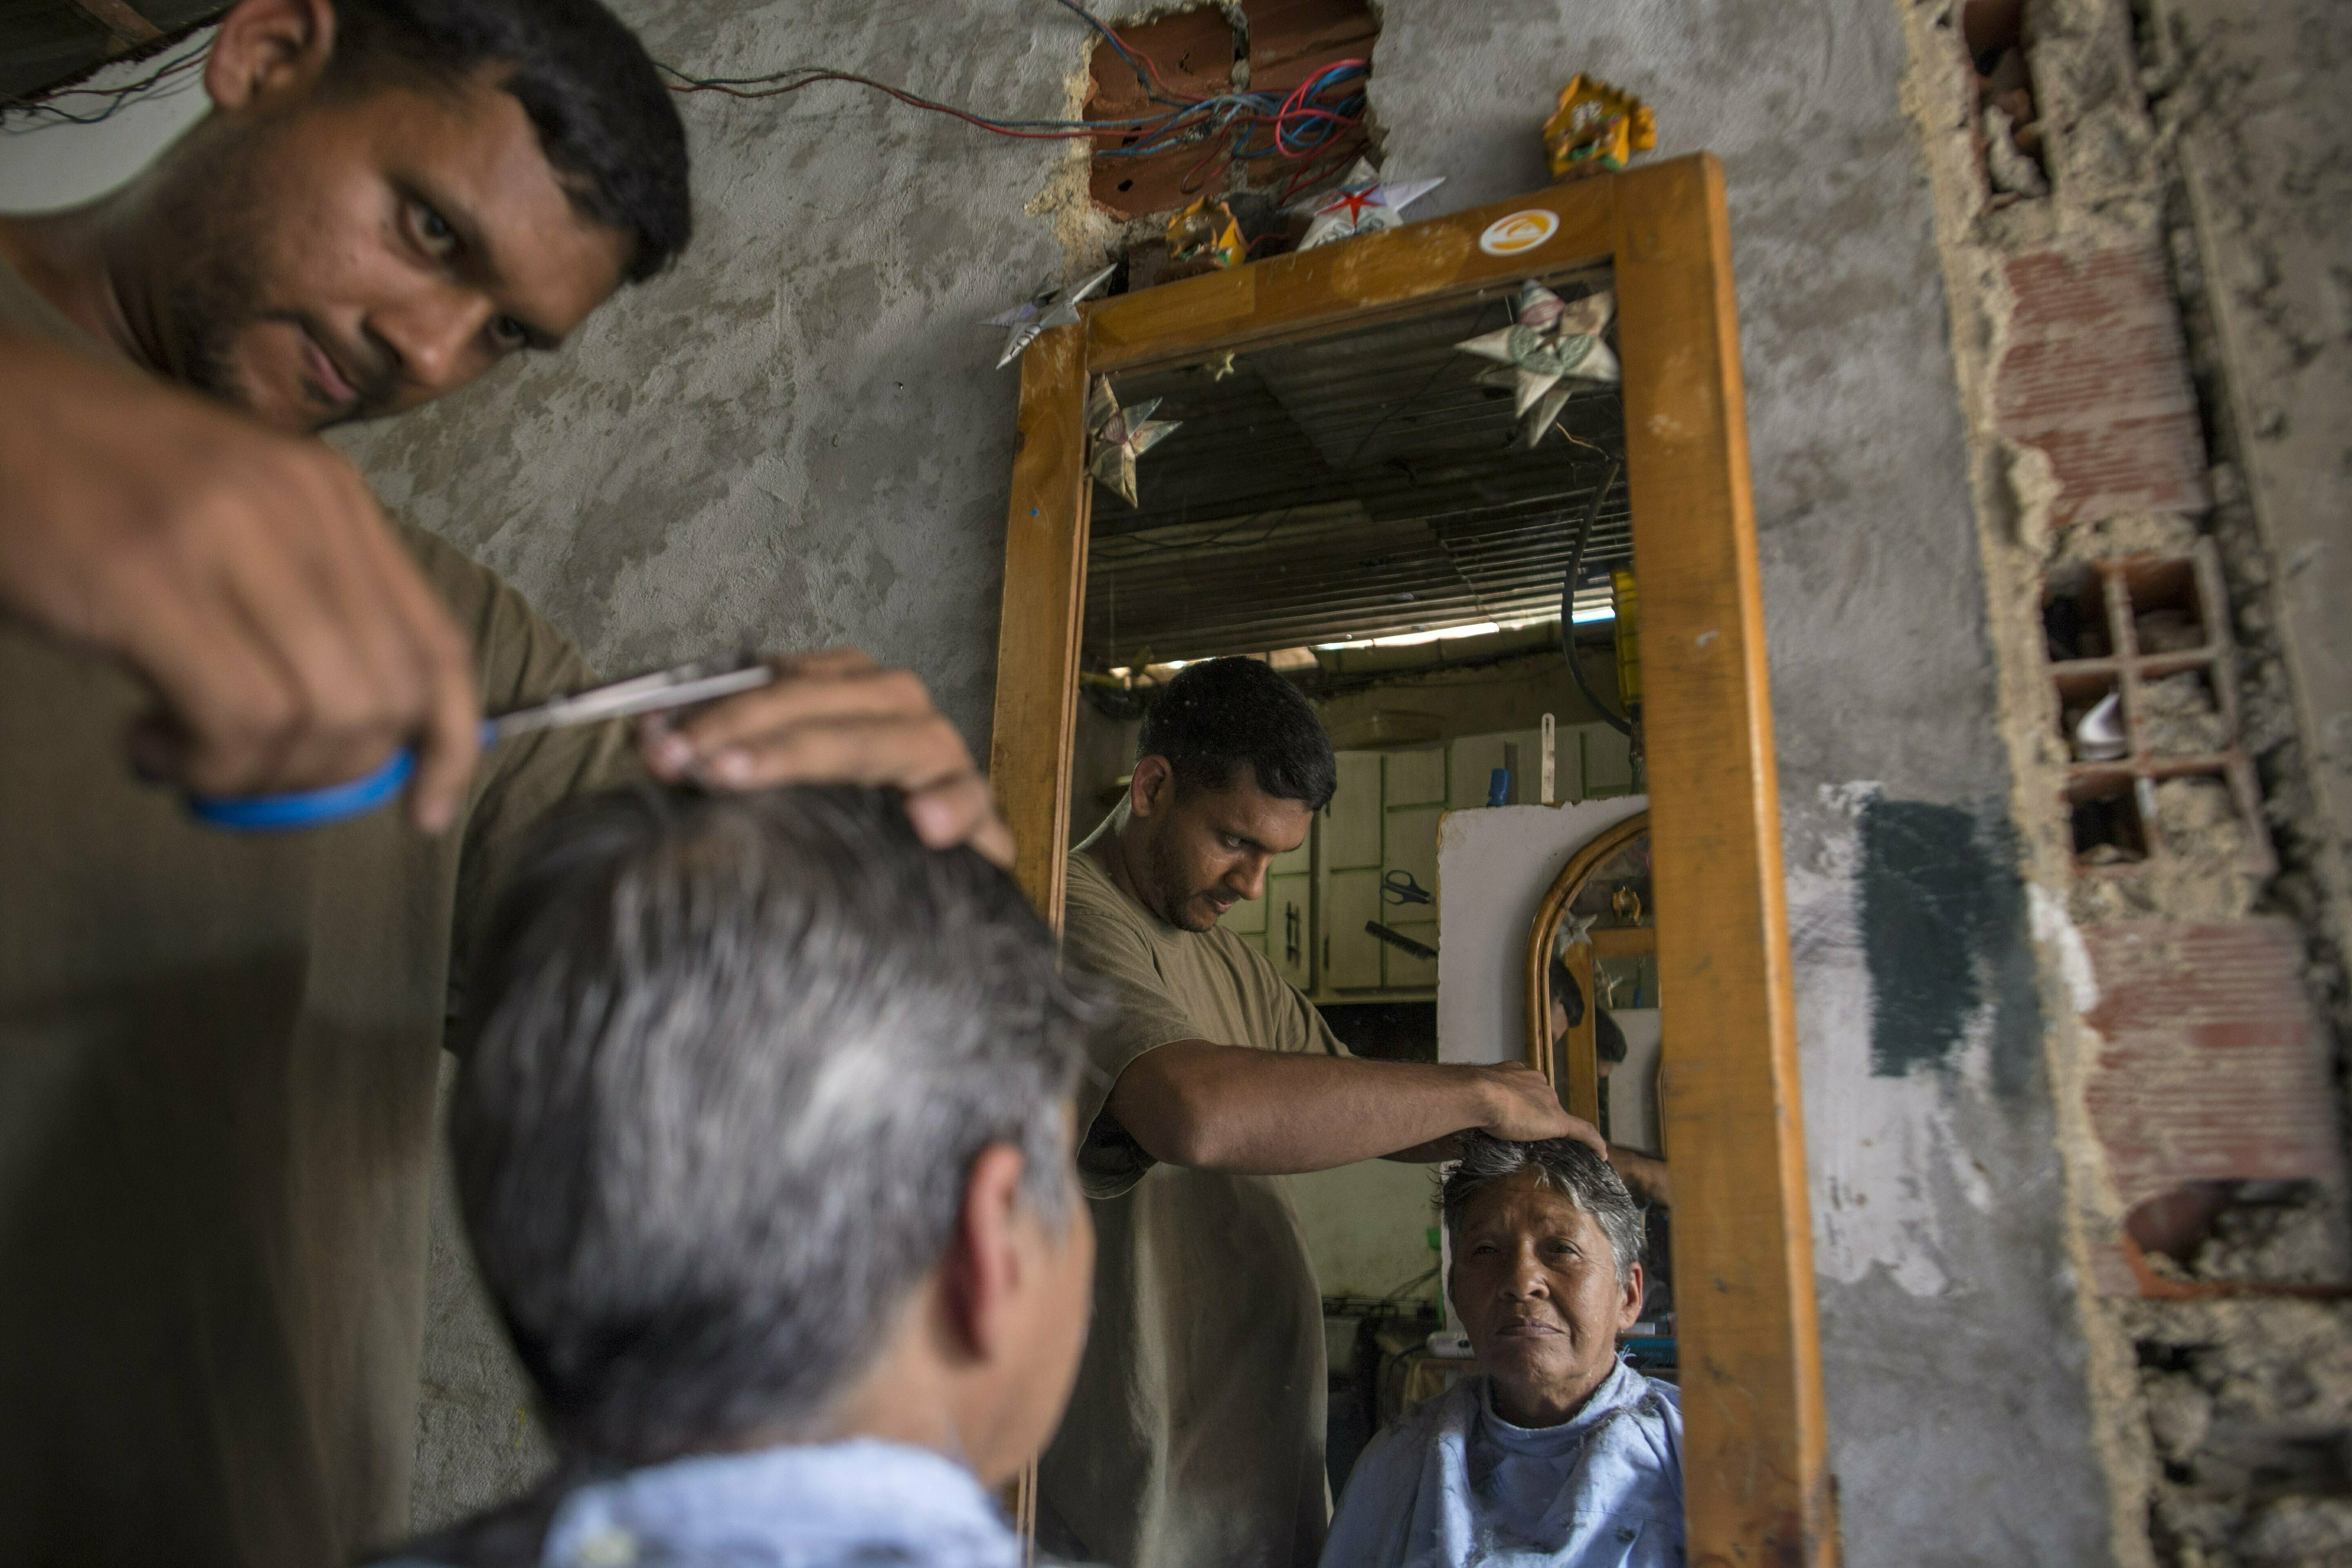 Jorge Flores practices his hairstyling skills on his mother Rosa Vega inside his home, where he is trying to set up a barber shop in the Petare slum, in Caracas, Feb. 14, 2019.